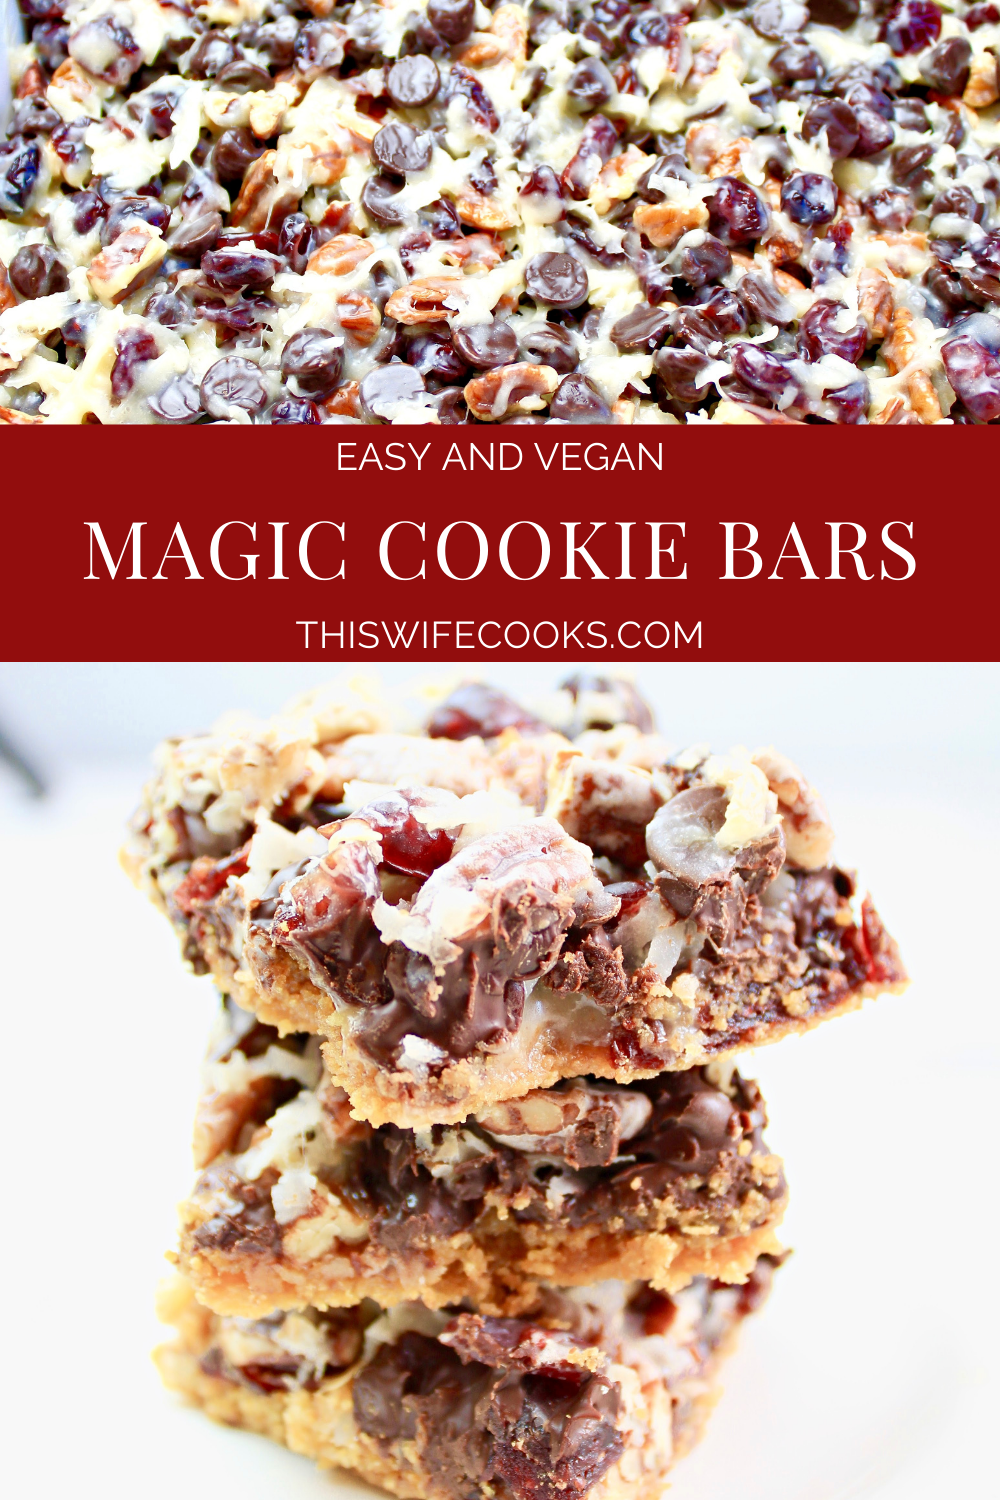 Magic Cookie Bars ~7 ingredients are all you need to make this dairy-free and vegan holiday dessert classic! via @thiswifecooks